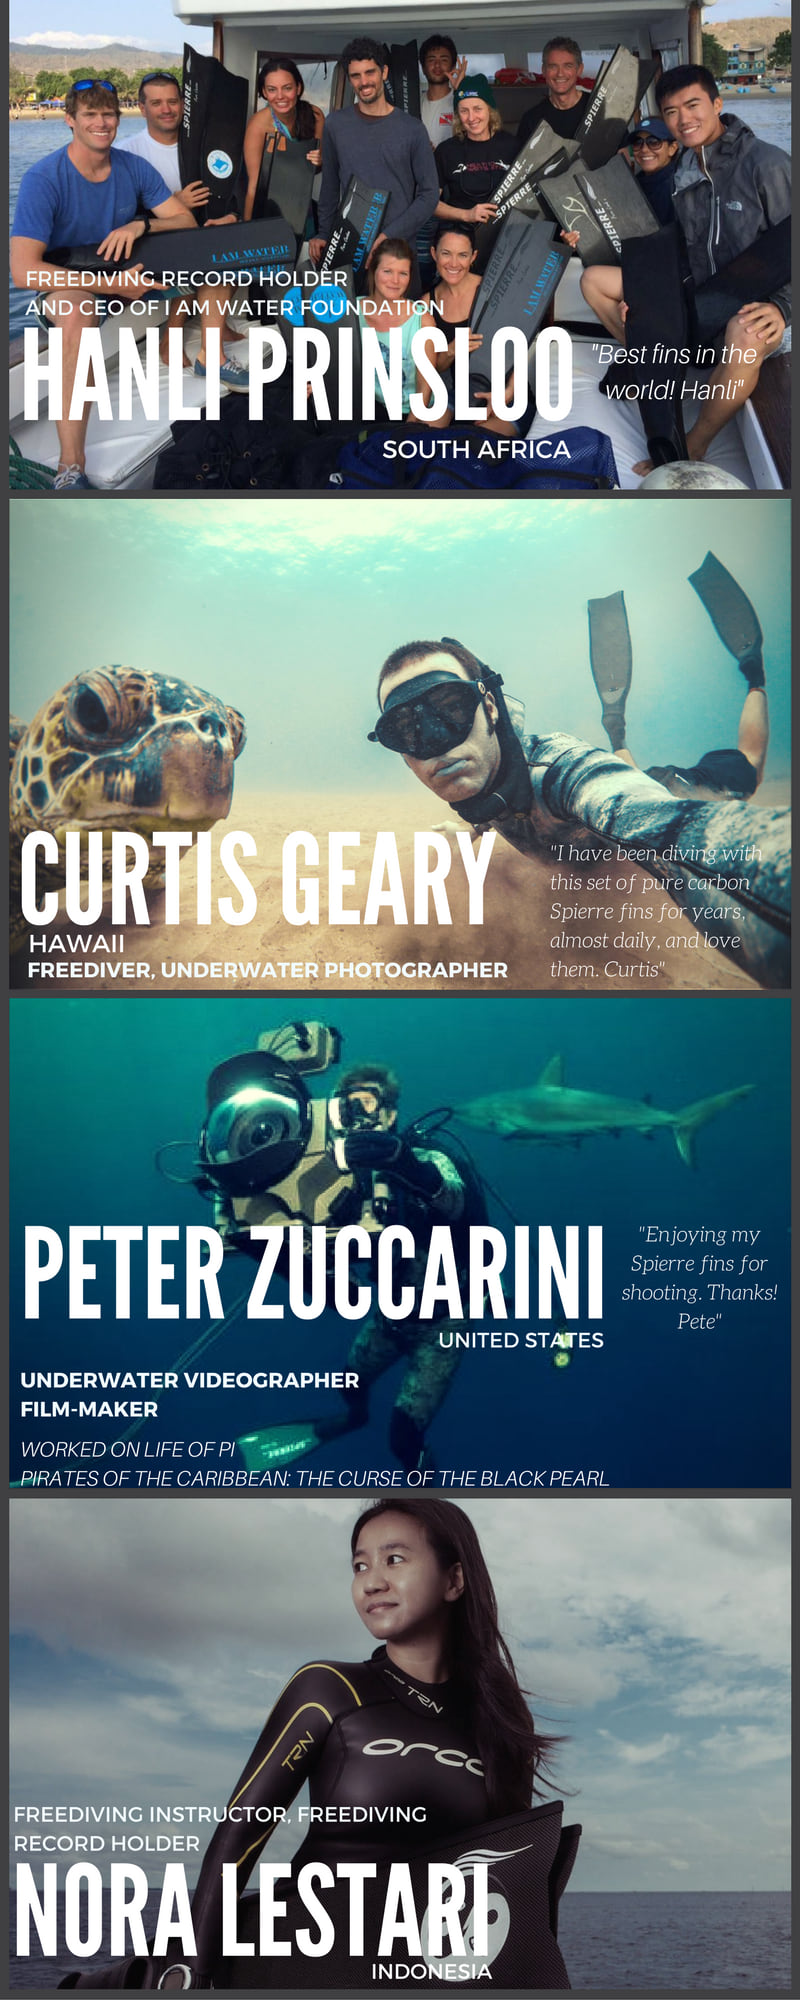 Hanli Prinsloo, Curtis Geary, Peter Zuccarini, Beth Neale, I Am Water Foundation, All featured divers of Spierre fins